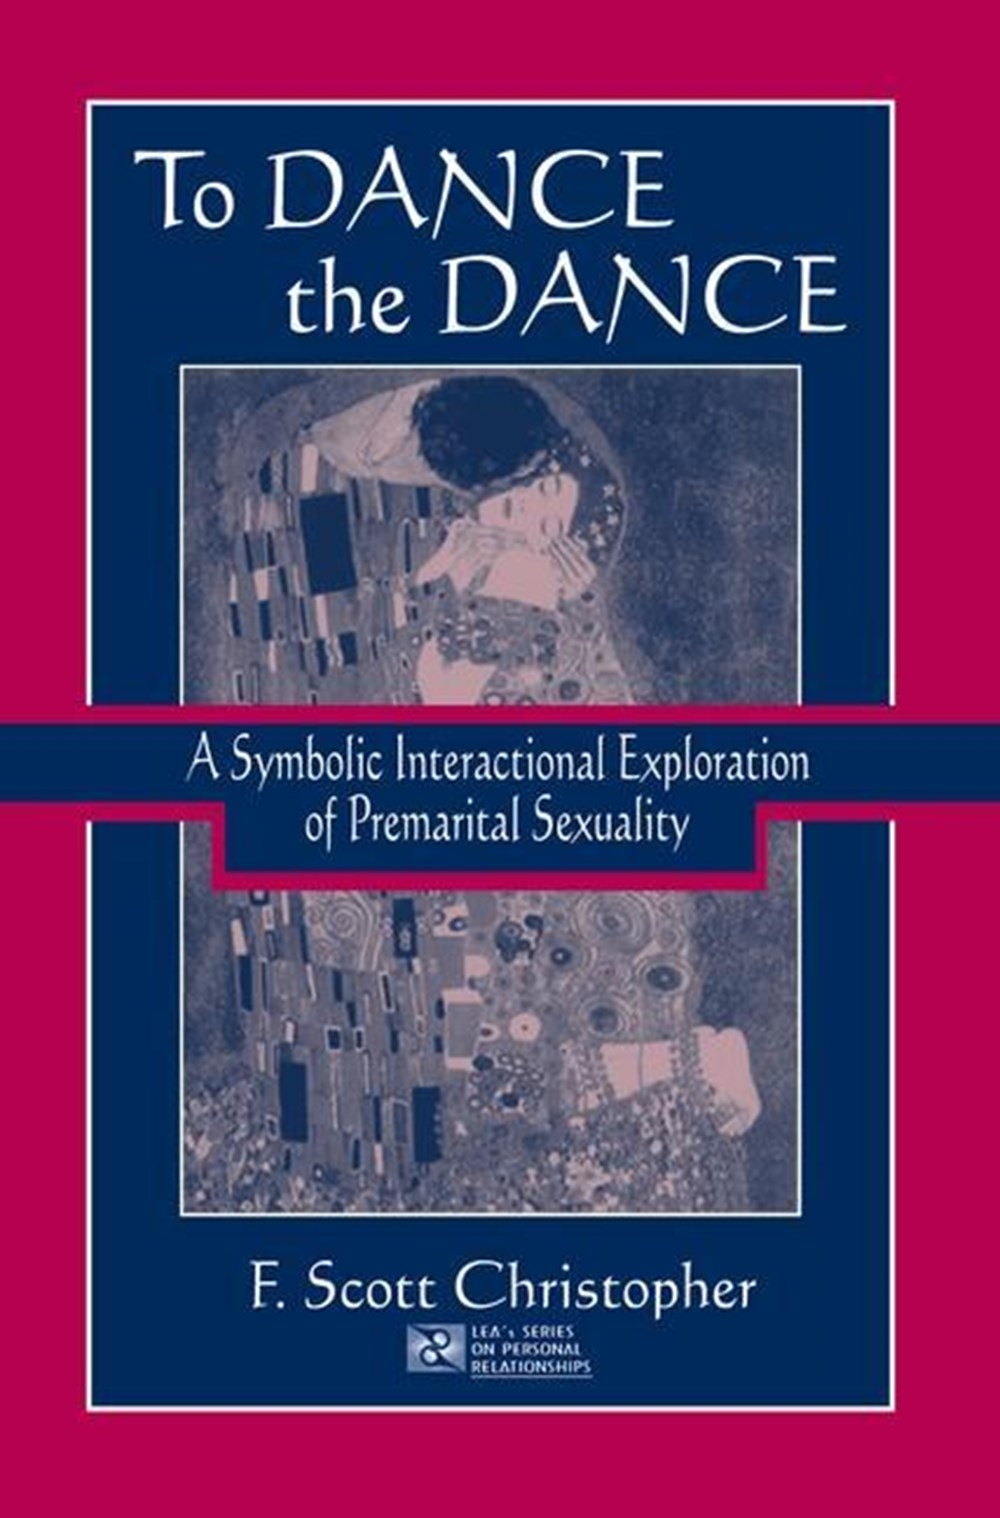 To Dance the Dance A Symbolic Interactional Exploration of Premarital Sexuality